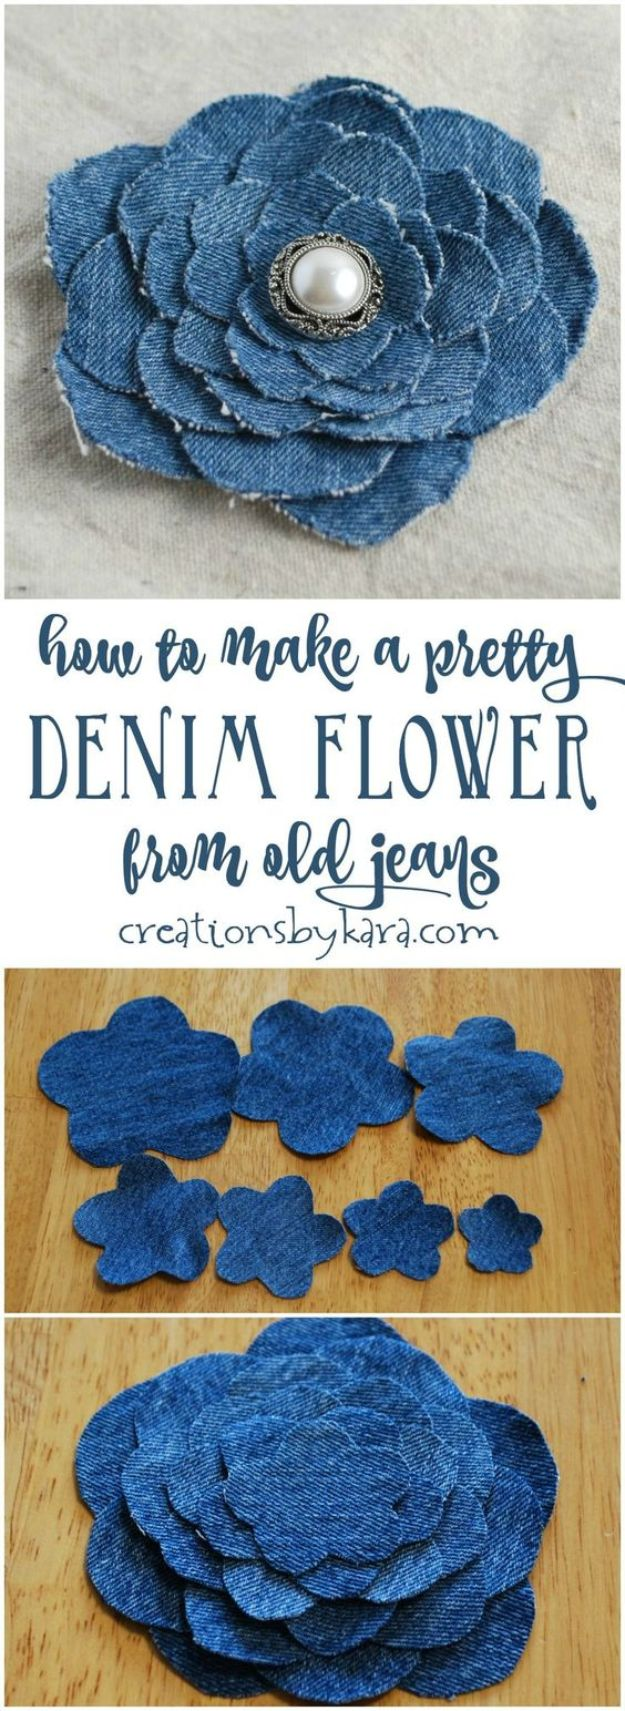 Blue Jean Upcycles - Denim Flower From Old Jeans - Ways to Make Old Denim Jeans Into DIY Home Decor, Handmade Gifts and Creative Fashion - Transform Old Blue Jeans into Pillows, Rugs, Kitchen and Living Room Decor, Easy Sewing Projects for Beginners #sewing #diy #crafts #upcycle